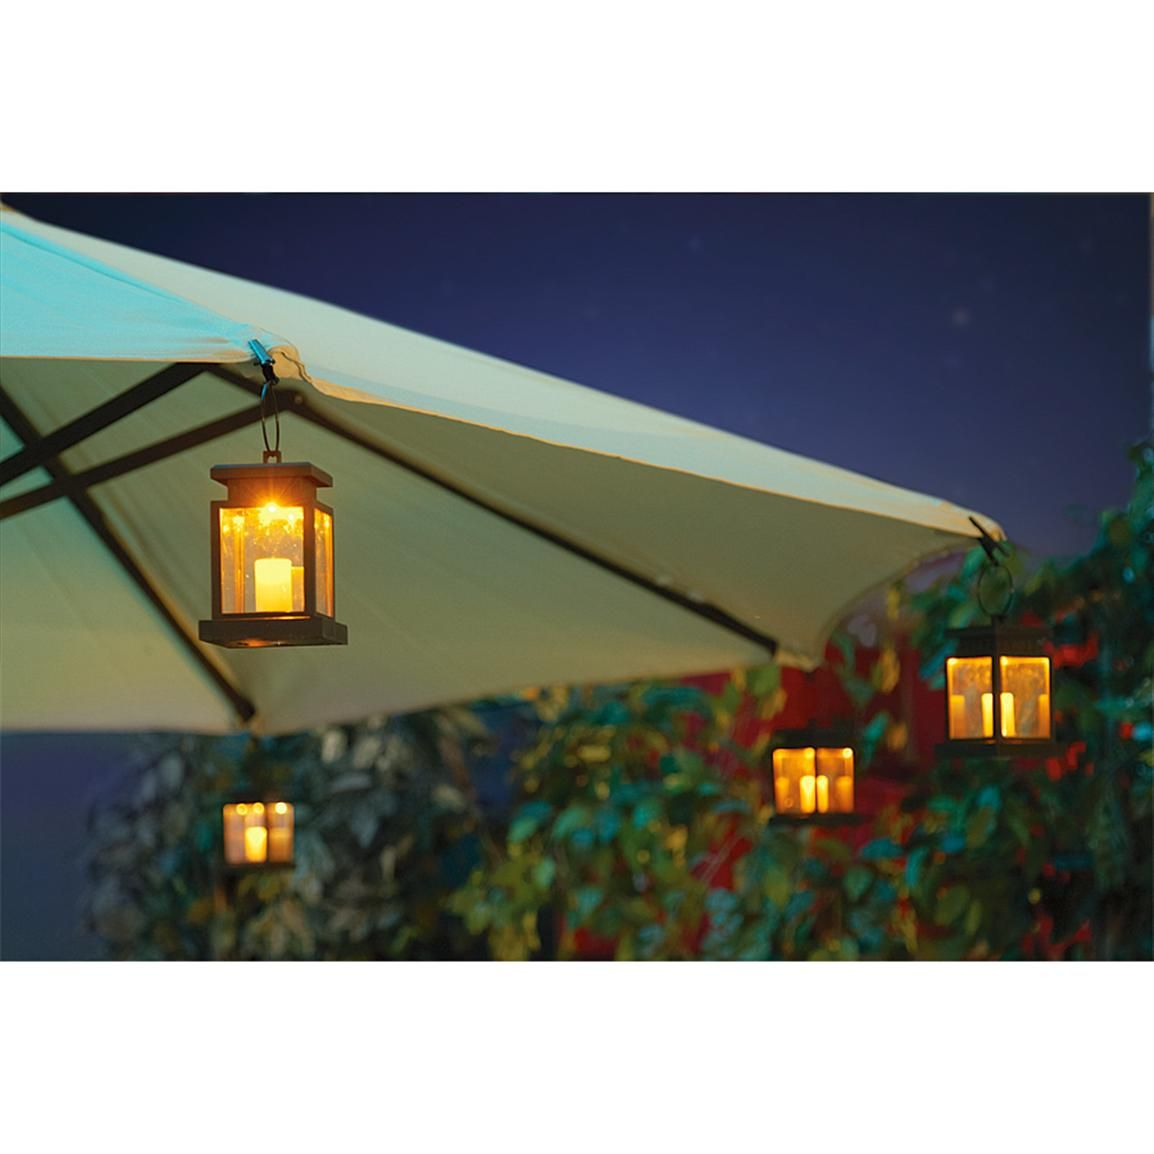 Solar Lights For Patio Umbrellas Glamorous 4  Pkof Solar Patio Umbrella Clip Lights Patio Garden Design Inspiration